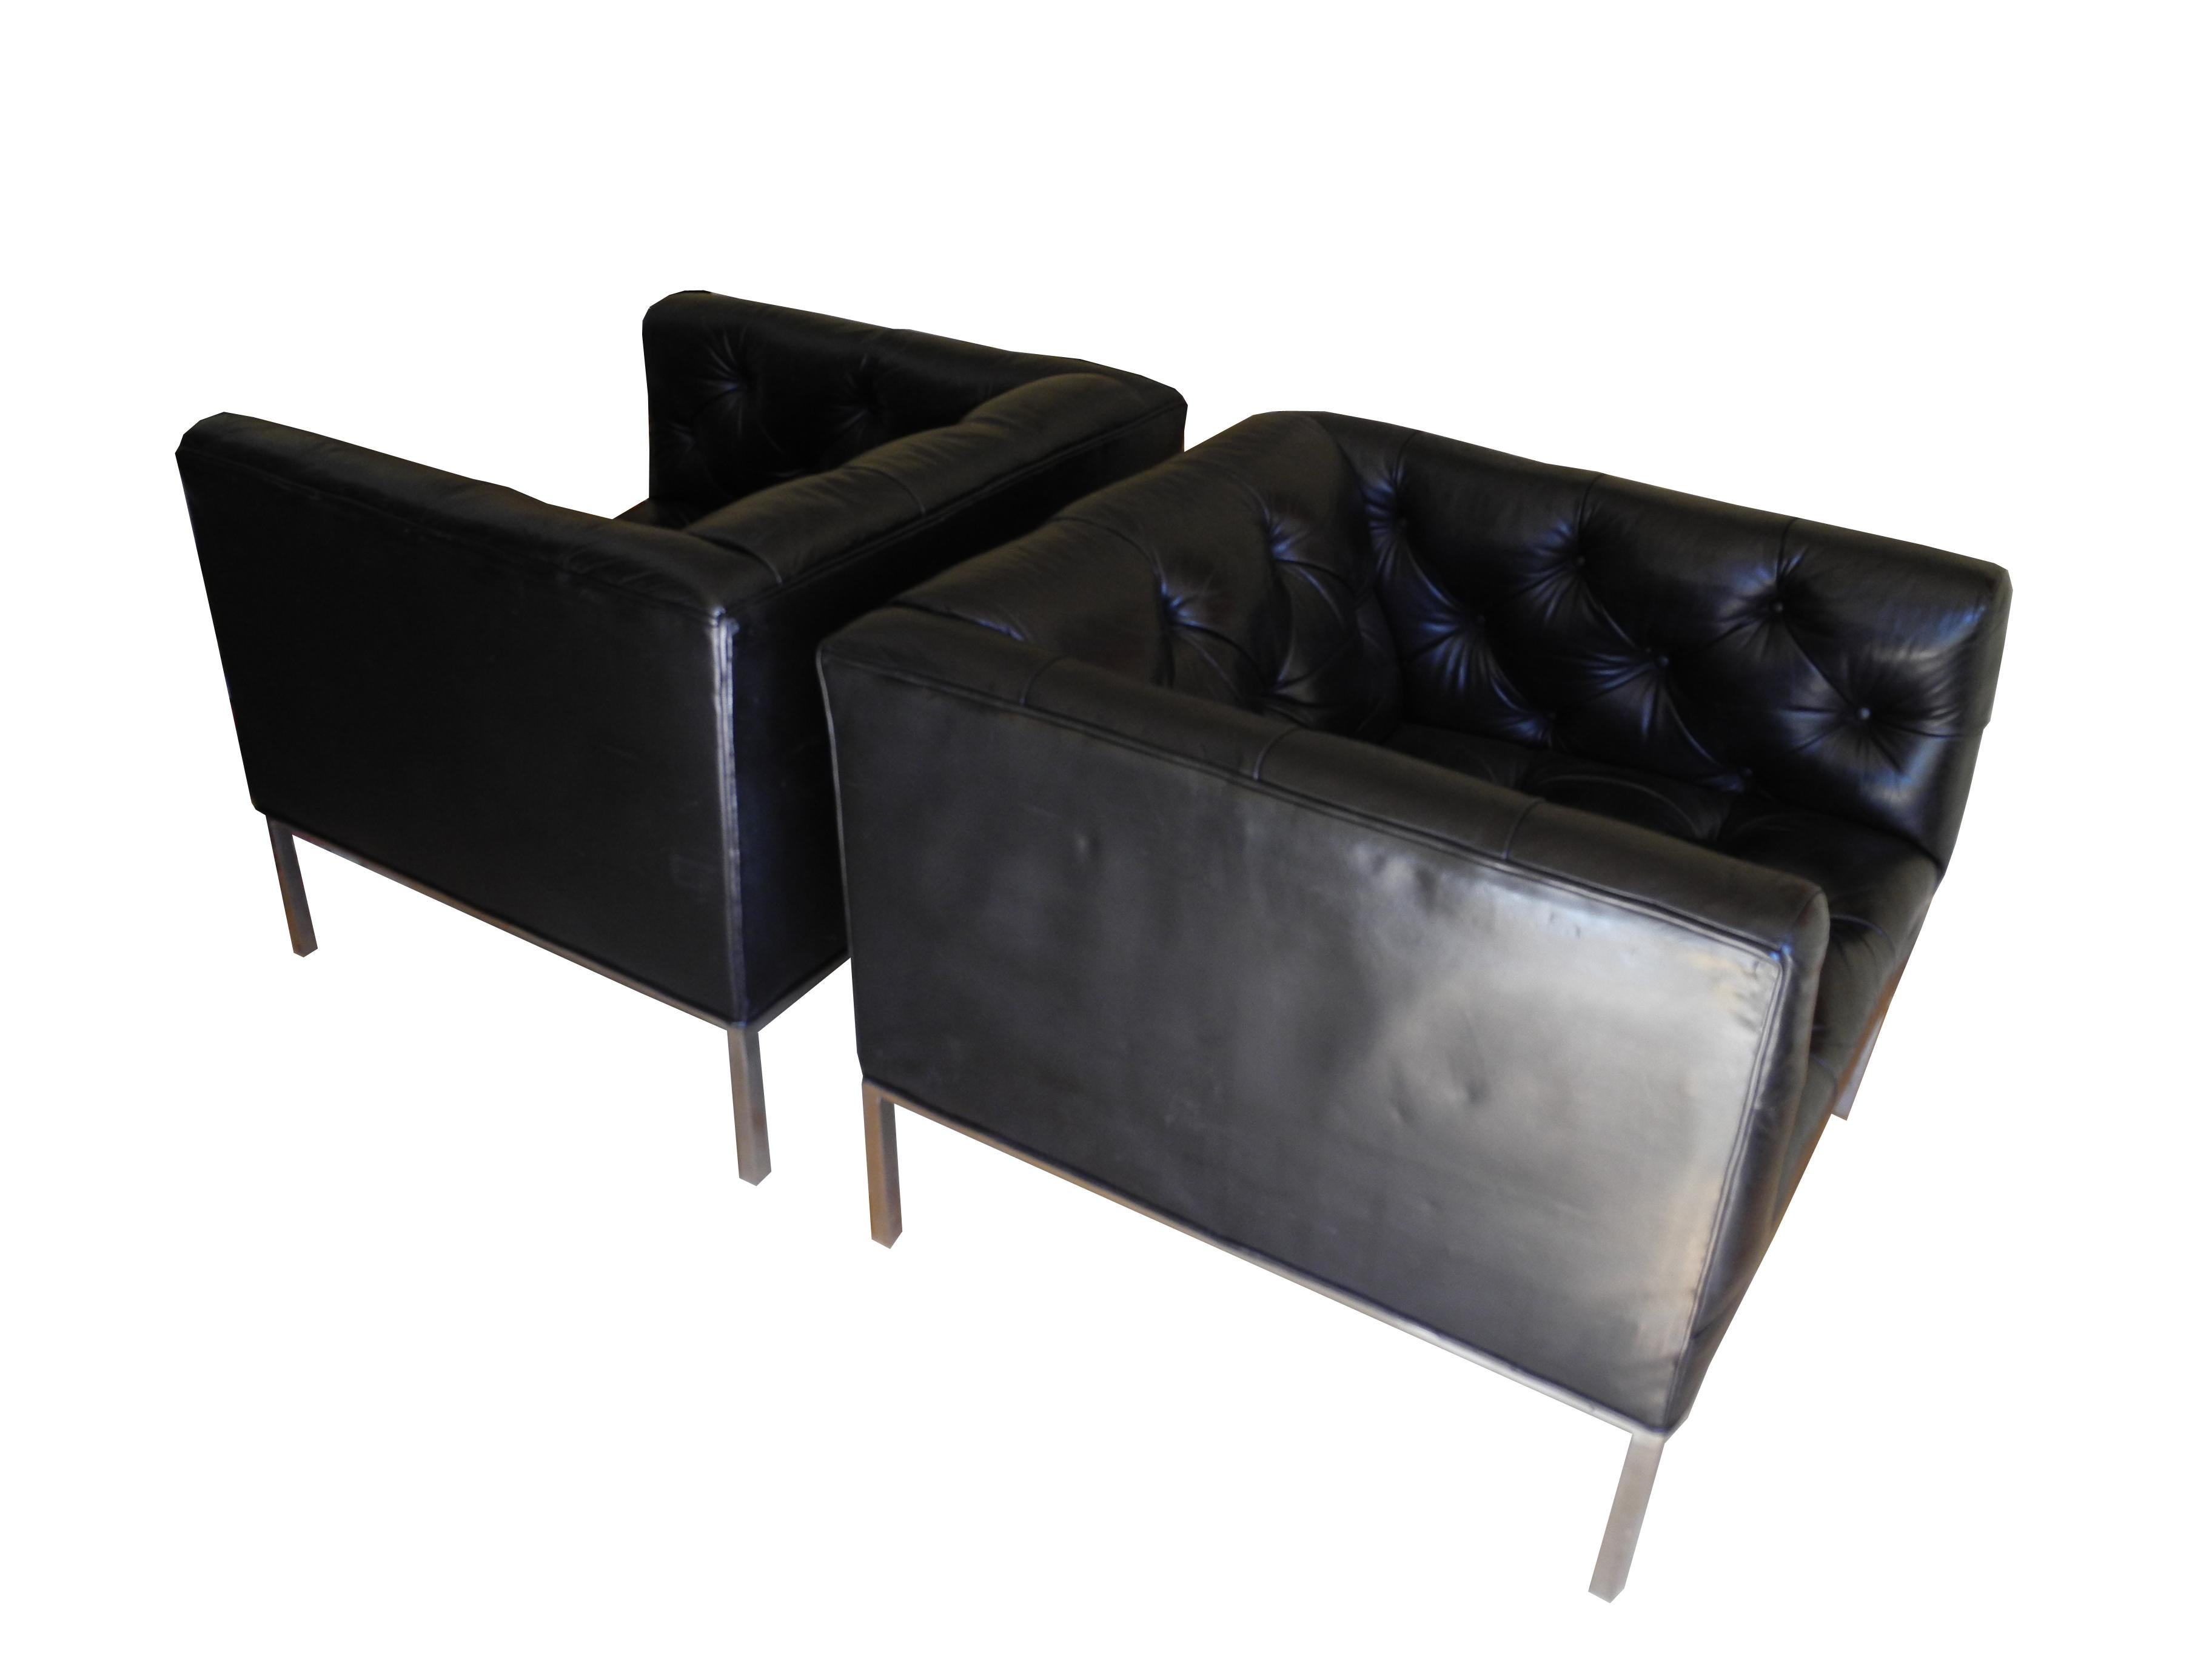 Fabulous Modern Matching Black Leather Tufted Cube Chairs On Stainless Steel Bases Creativecarmelina Interior Chair Design Creativecarmelinacom